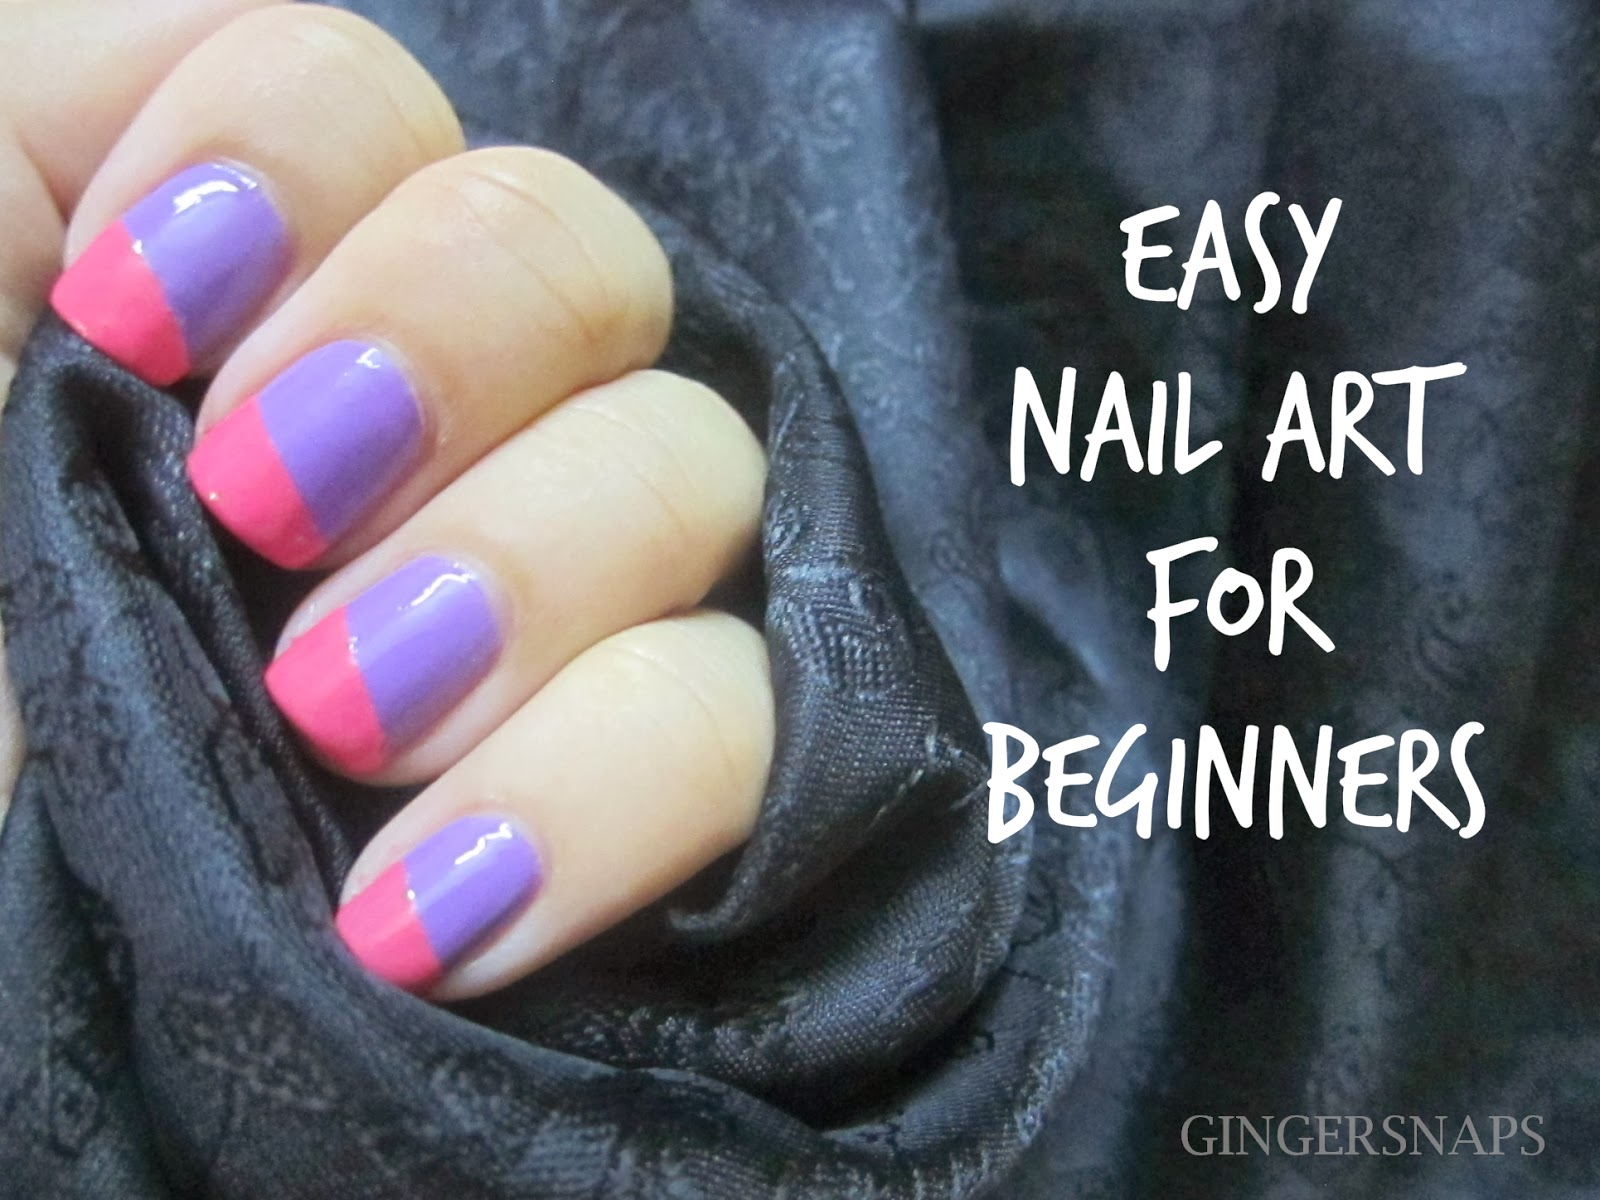 How To Do Nail Art At Home For Beginners | myideasbedroom.com